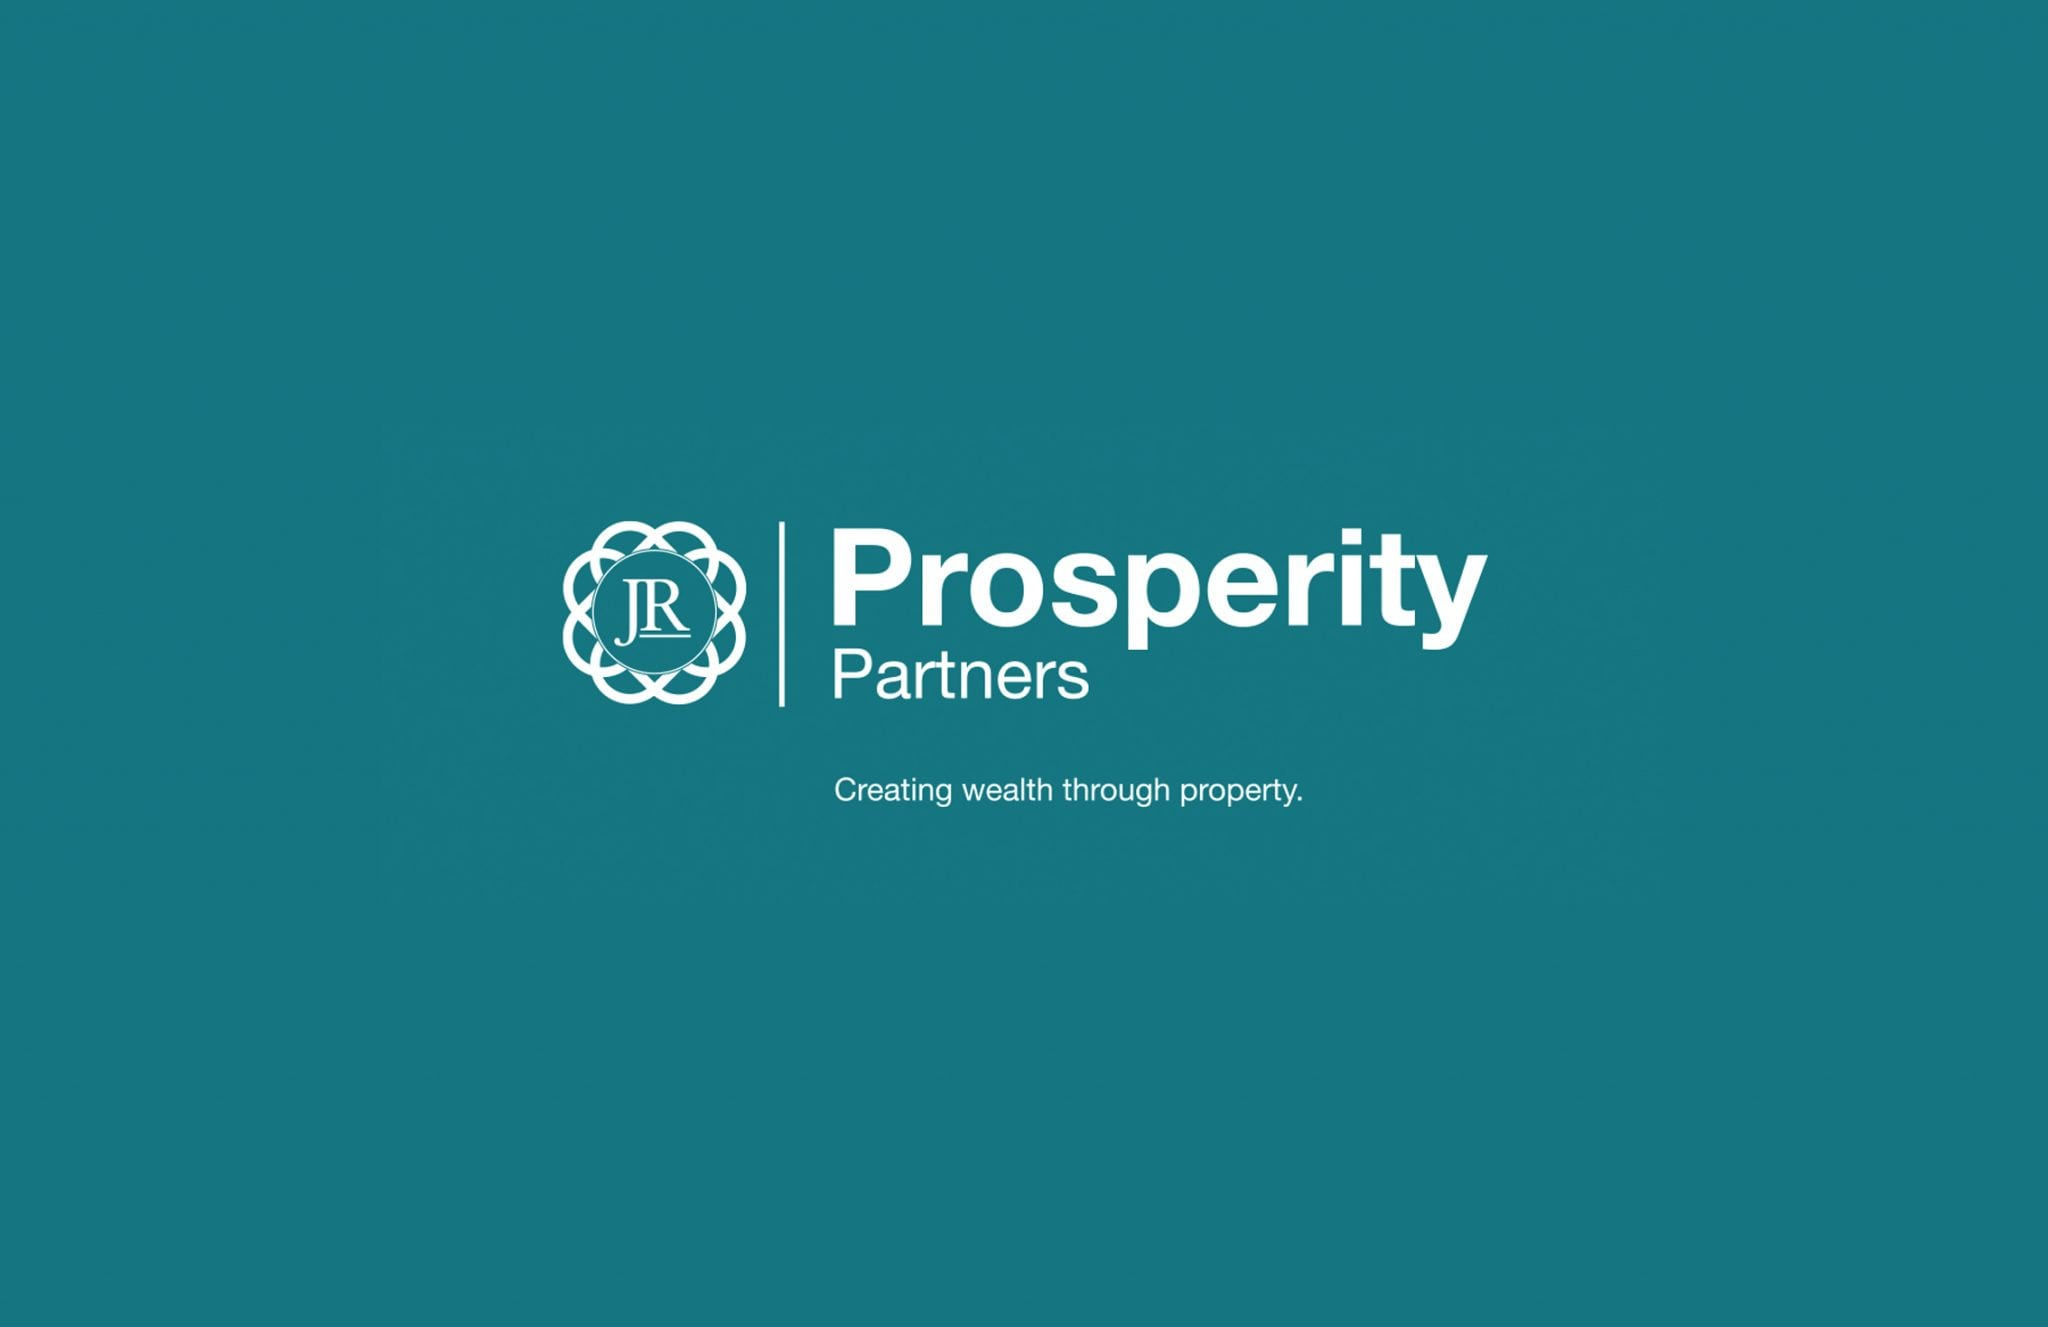 JR Prosperity Partners